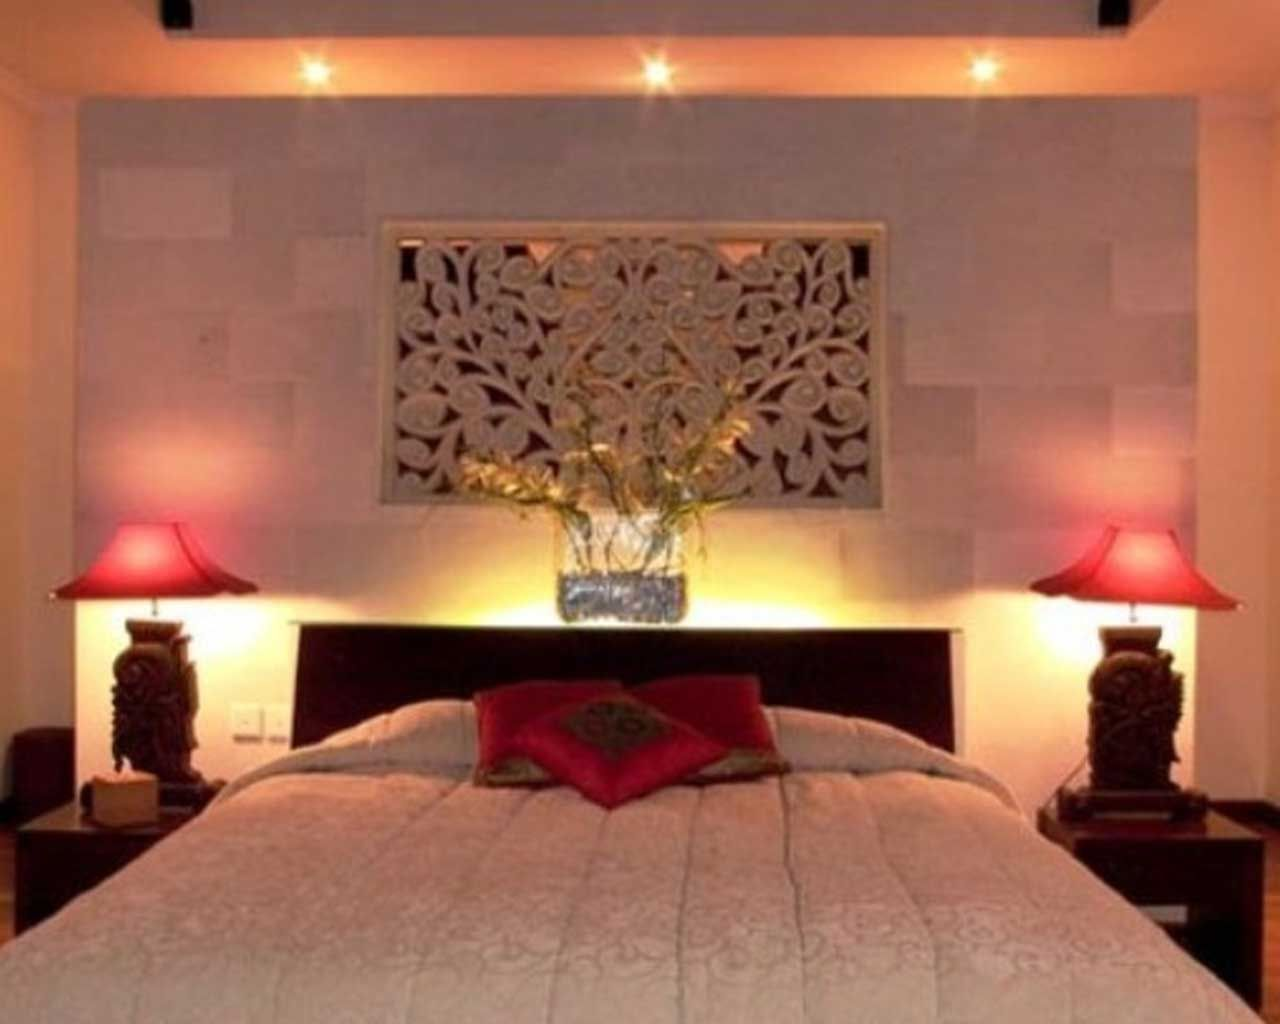 Bedroom Romantic Bedroom Lighting Ideas Feats Black Headboard And Red Accent Table Lamp For Lights